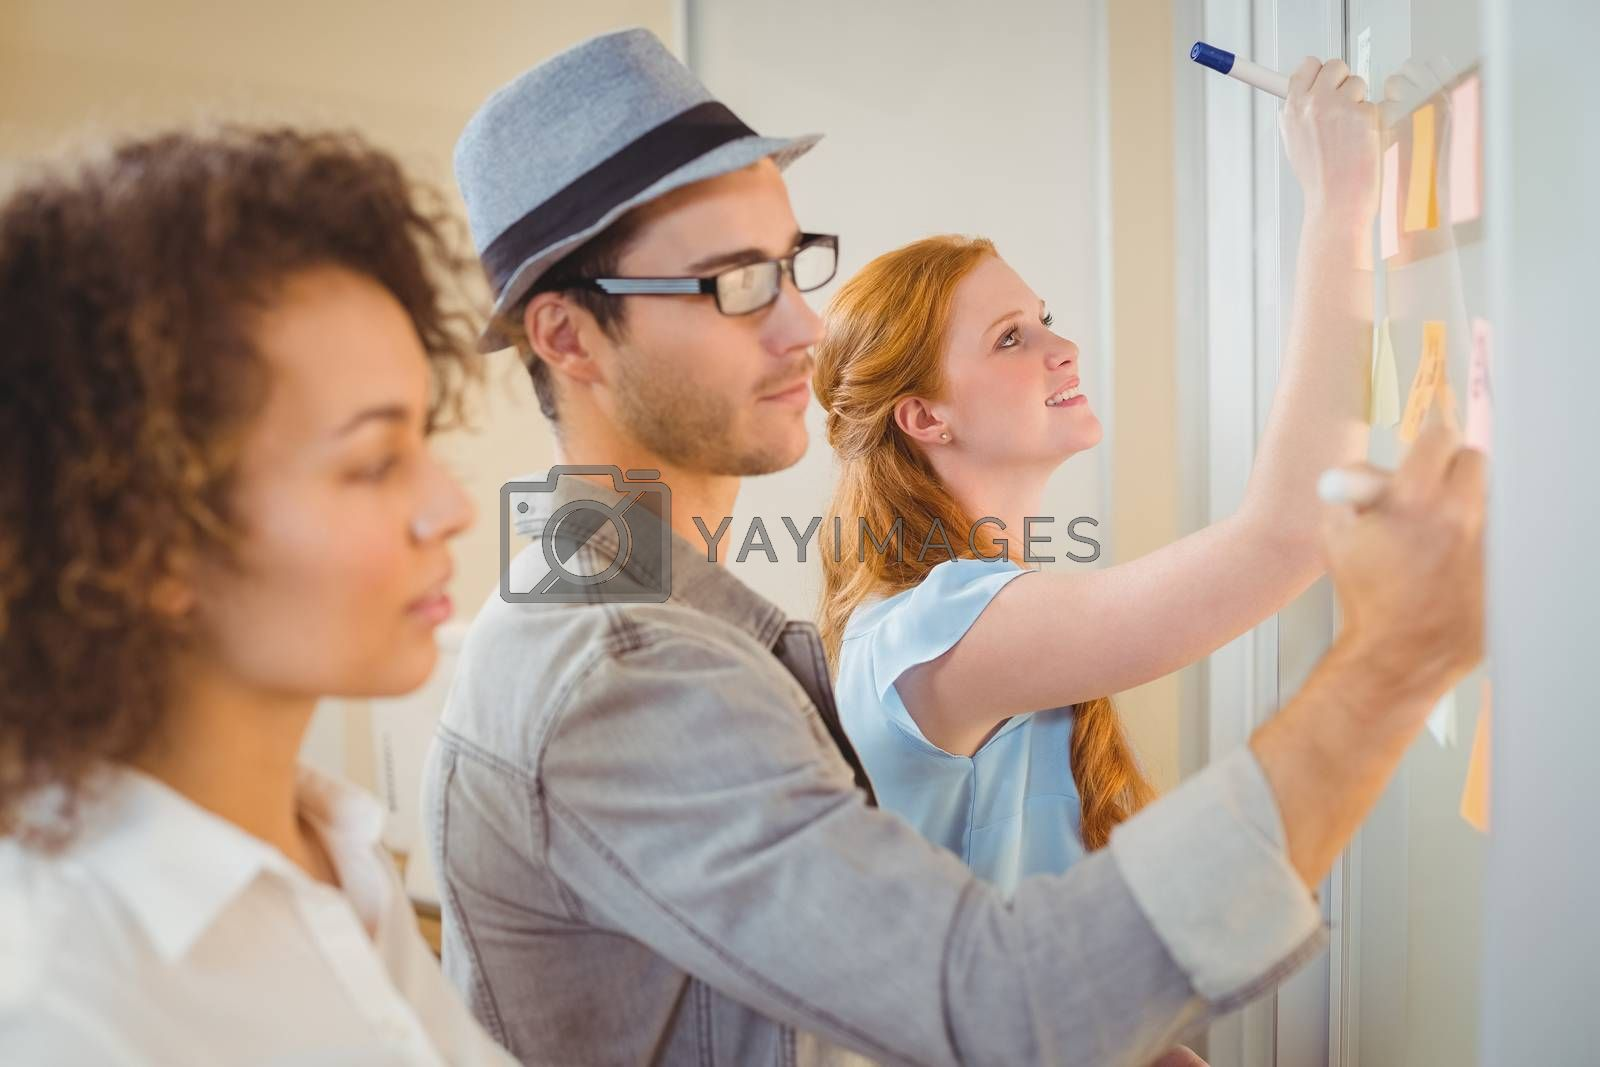 Smiling businesswoman writing on adhesive notes on glass wall during meeting in office